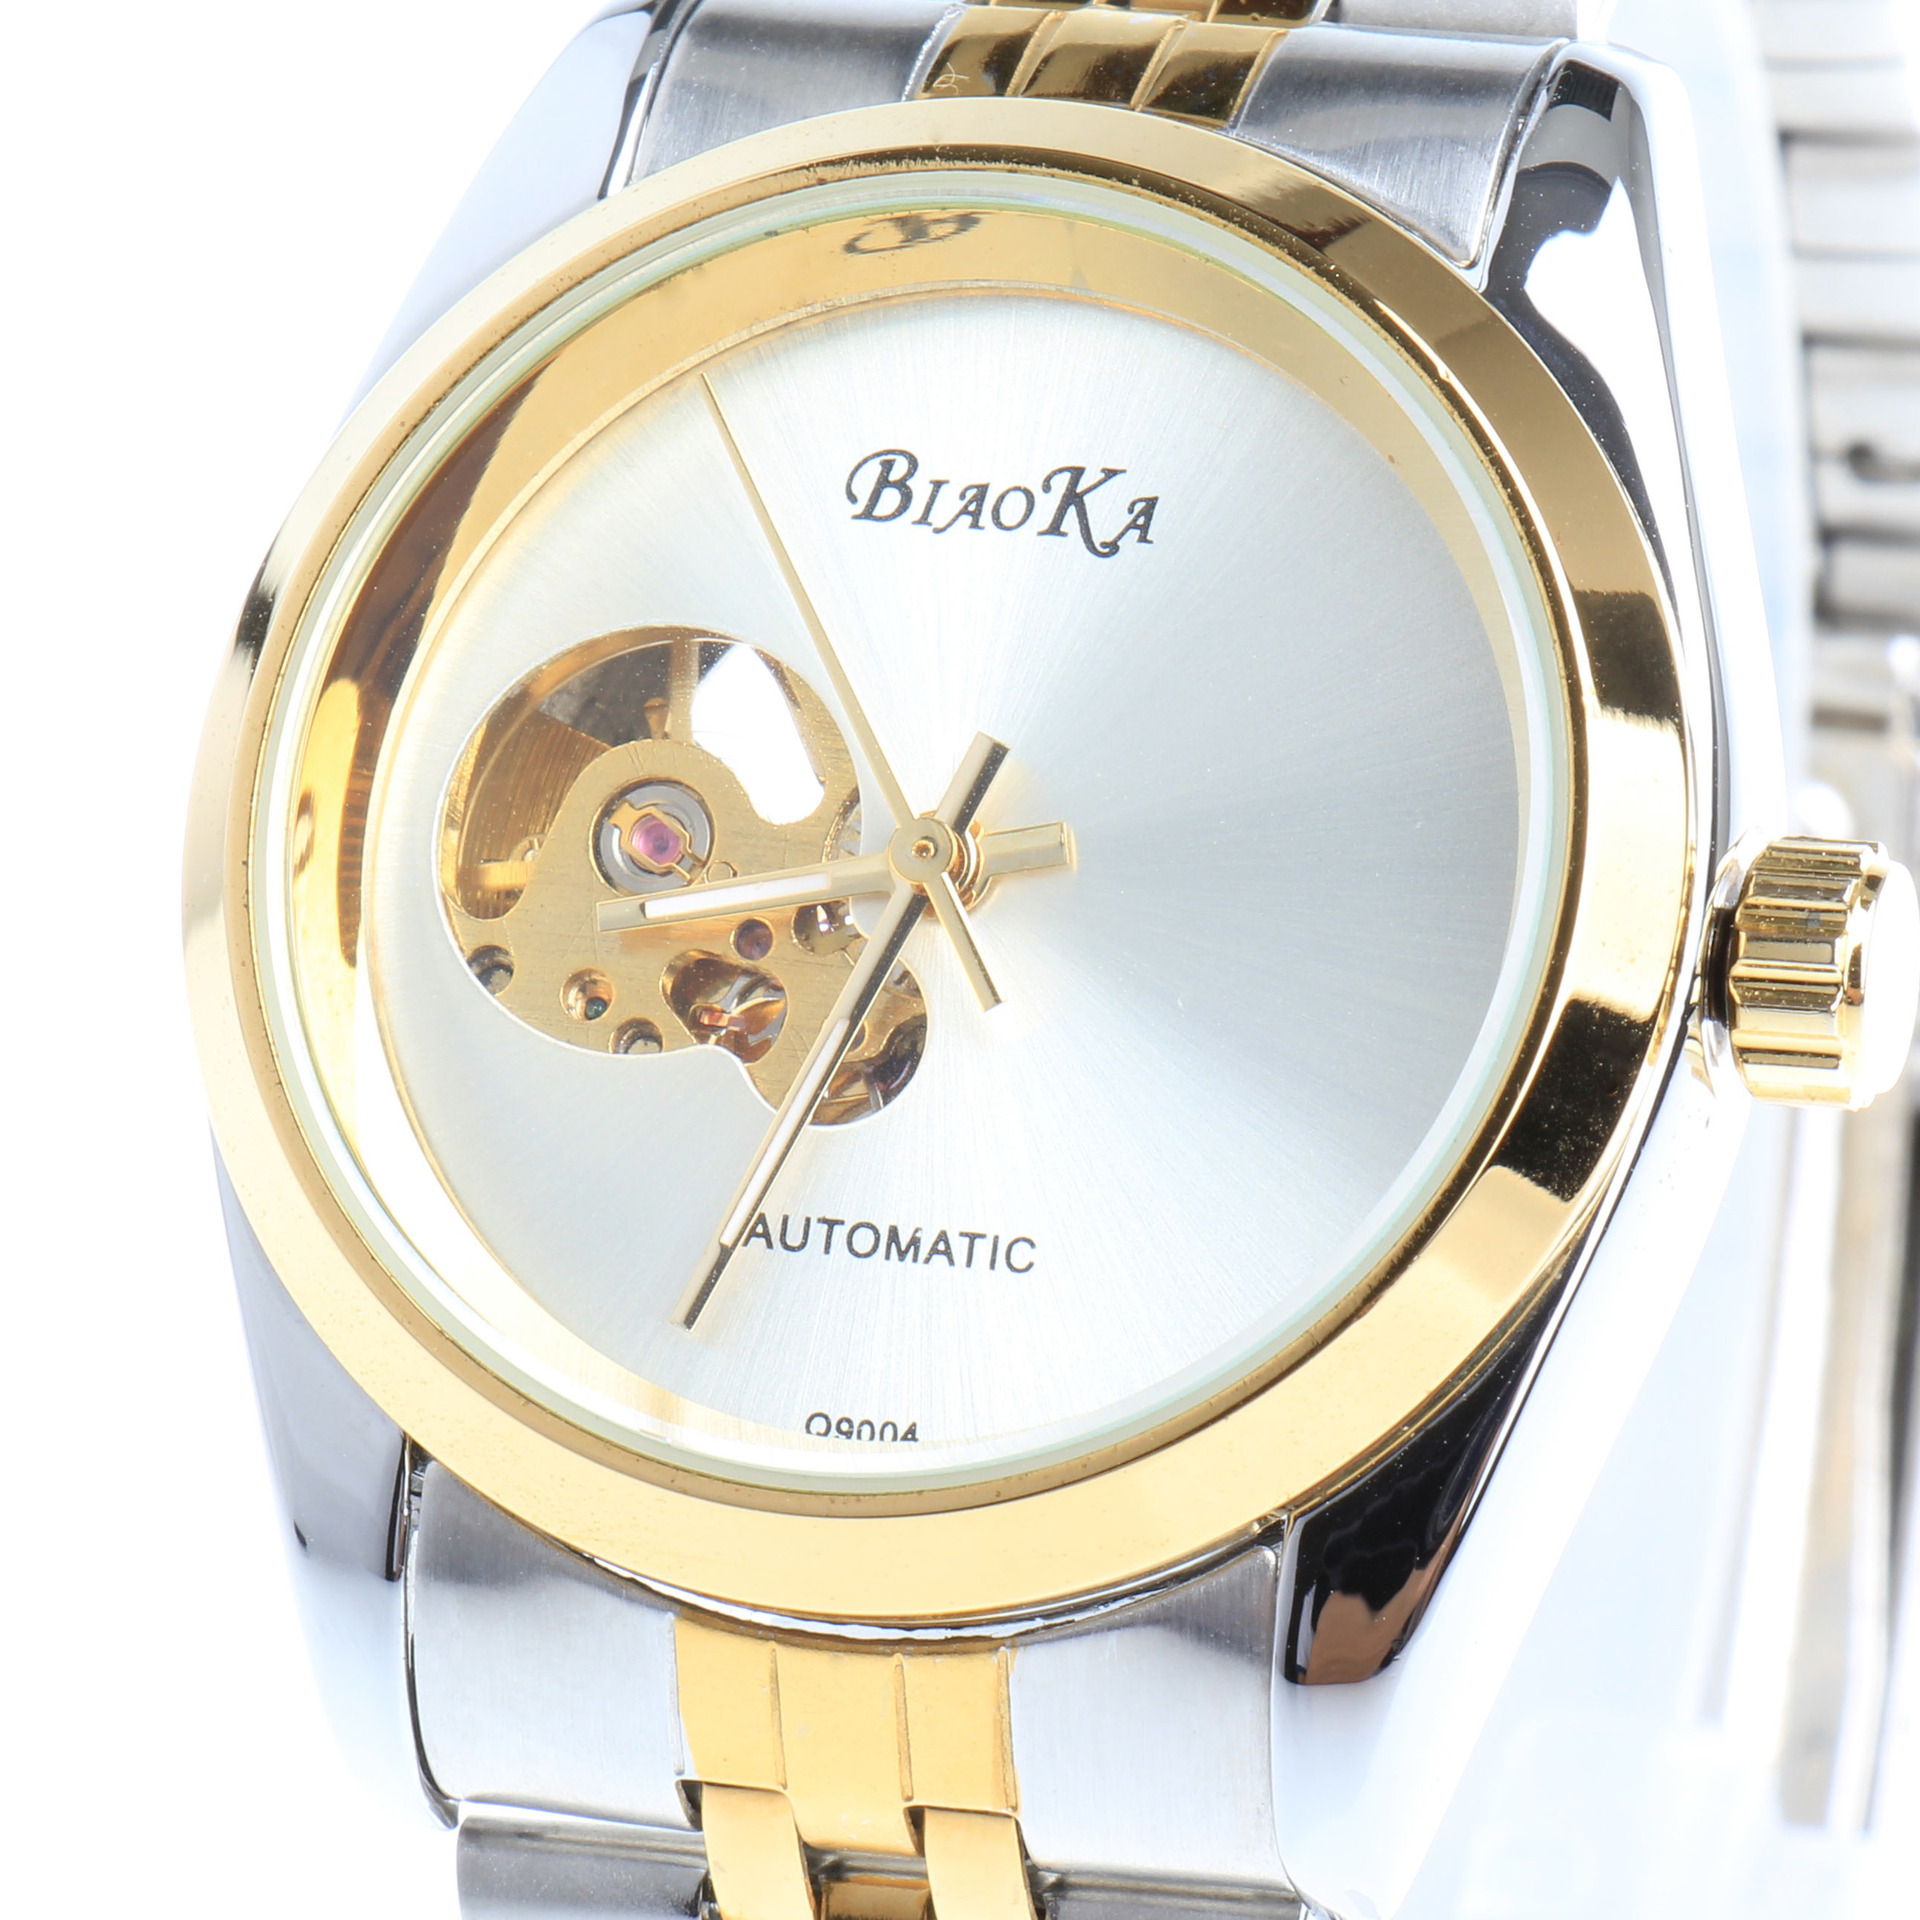 2016 NEWEST BIAOKA GOLD mechanical watch Top Brand Luxury automatic watch men 20mm stainless steel skeleton